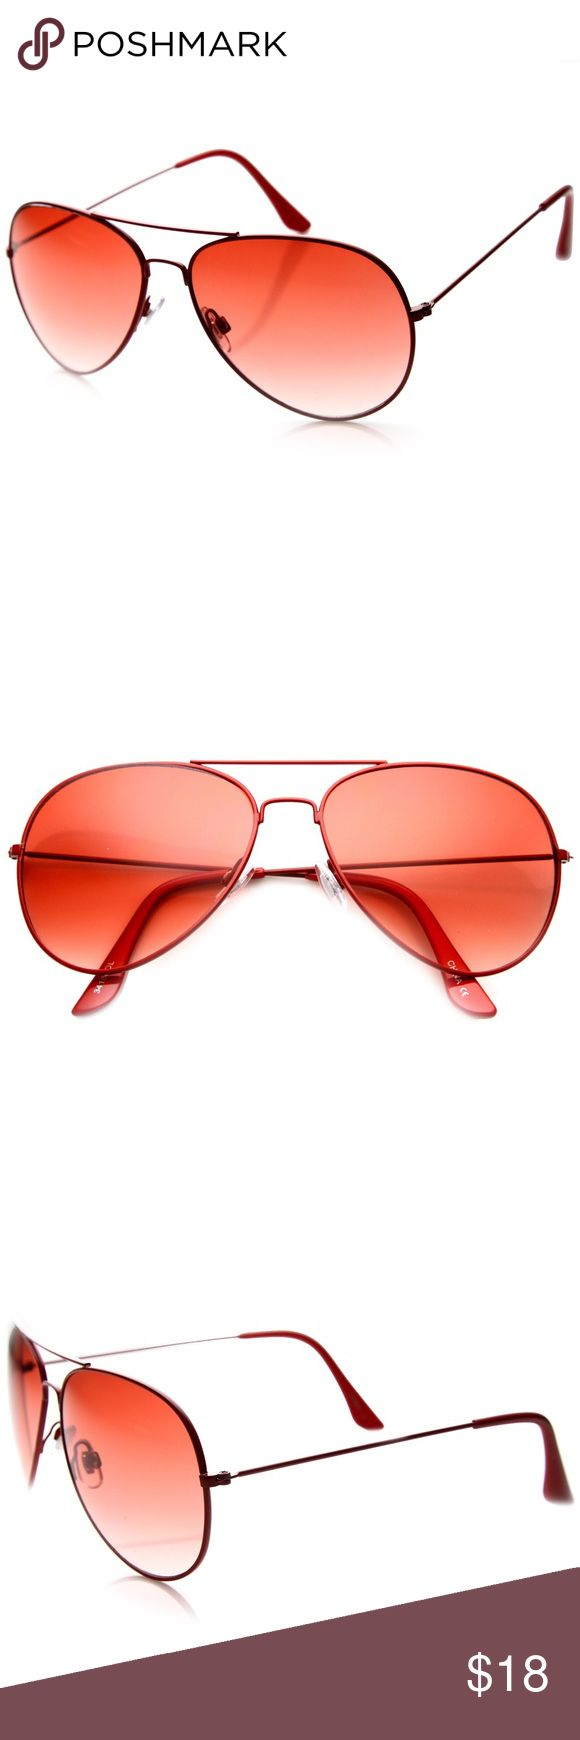 Classic Strawberry Red Aviators SUNNIES NWT Classic metal teardrop aviator with eye catching colored frames. Made with spring loaded hinges, English style nose pieces and revo color. Produced with optical hinges, 100% UV400 protection lenses and polycarbonate frame.   Lens Width: 52mm Nose Bridge: 22mm Lens Height: 52mm Total Width: 140mm SolSkin Accessories Sunglasses